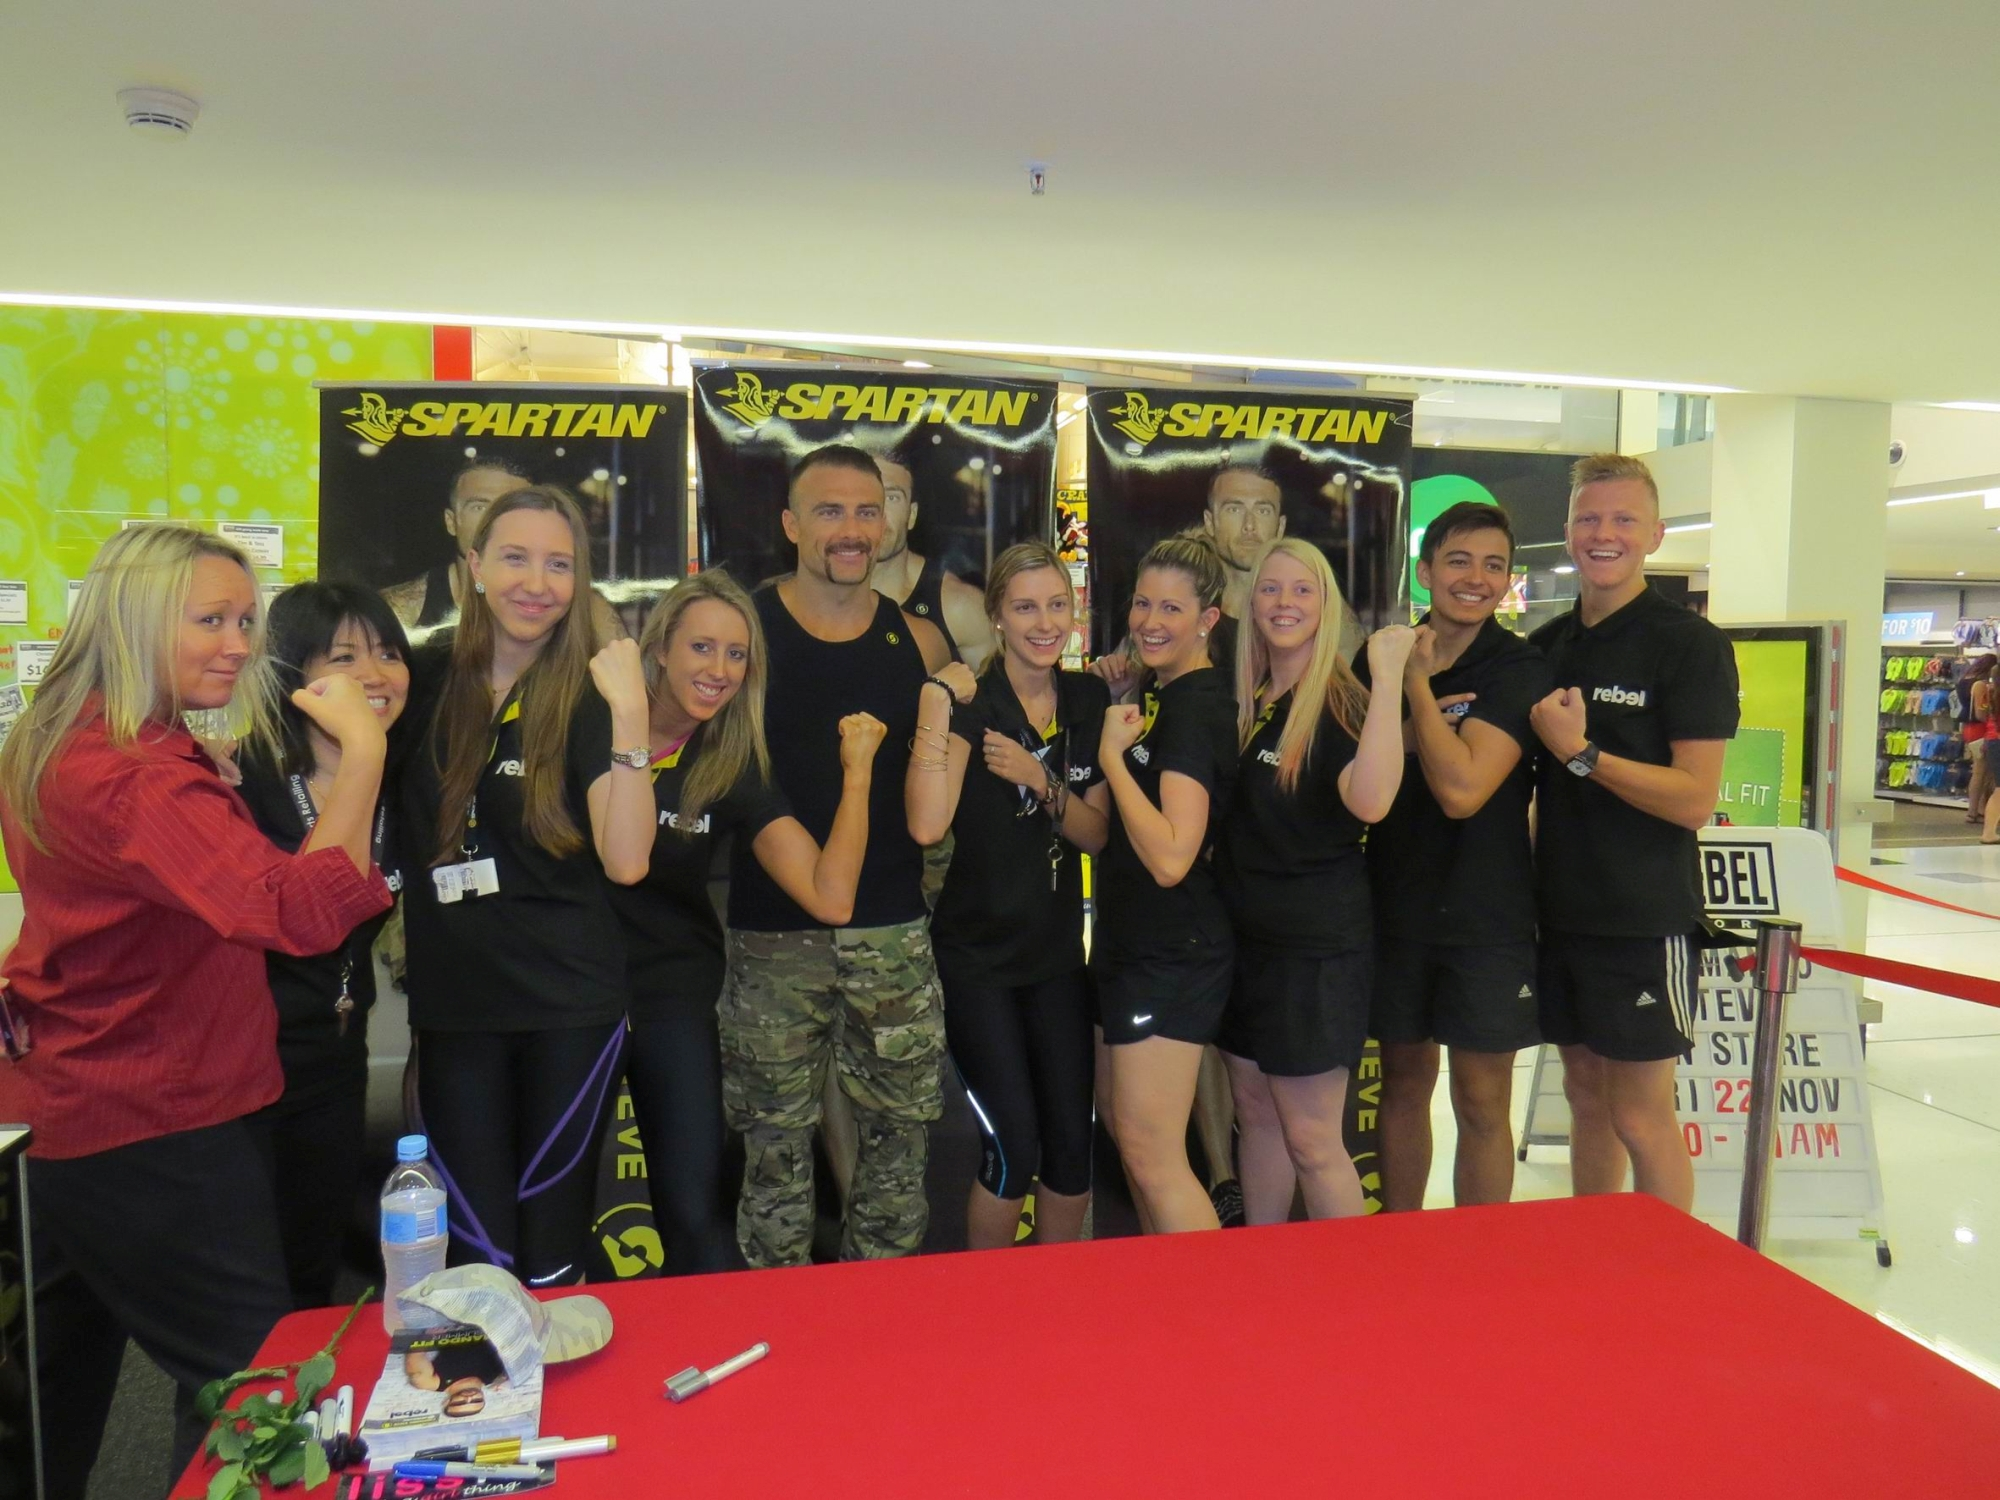 The Rebel Sport Joondalup team with 'the Commando'.